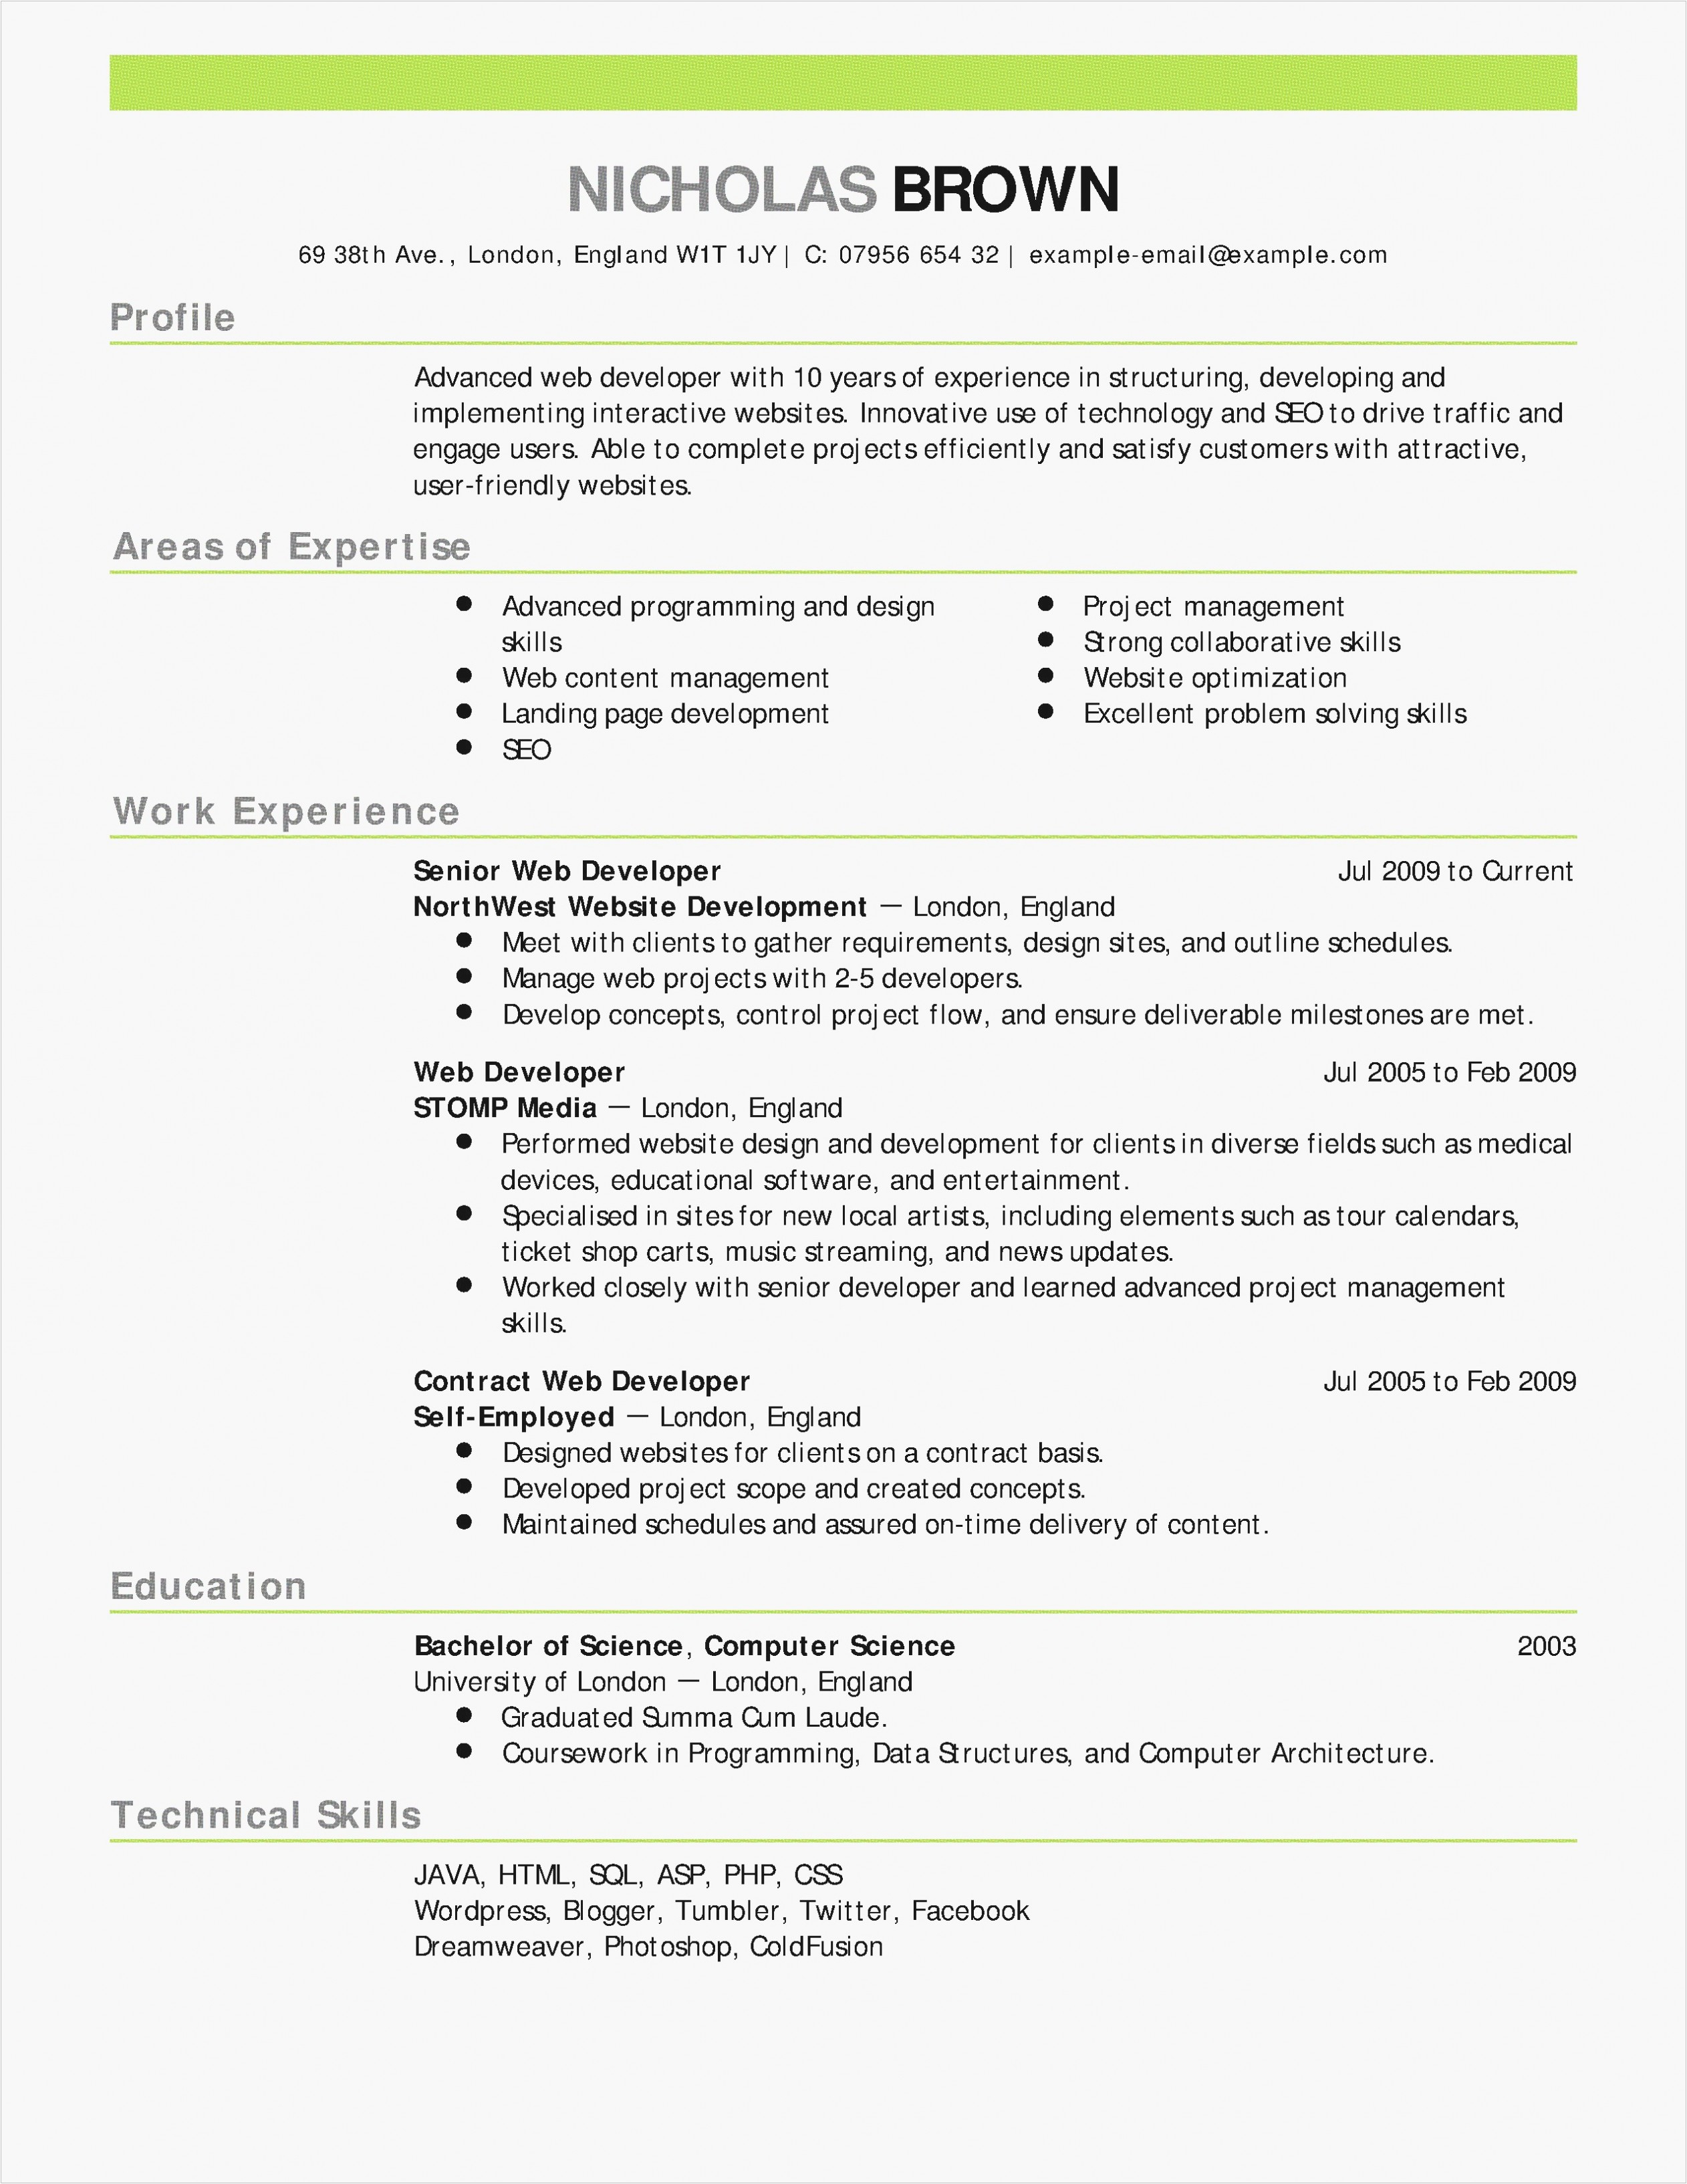 Resume Bootstrap Template Free - Letter Agreement Template Free Collection